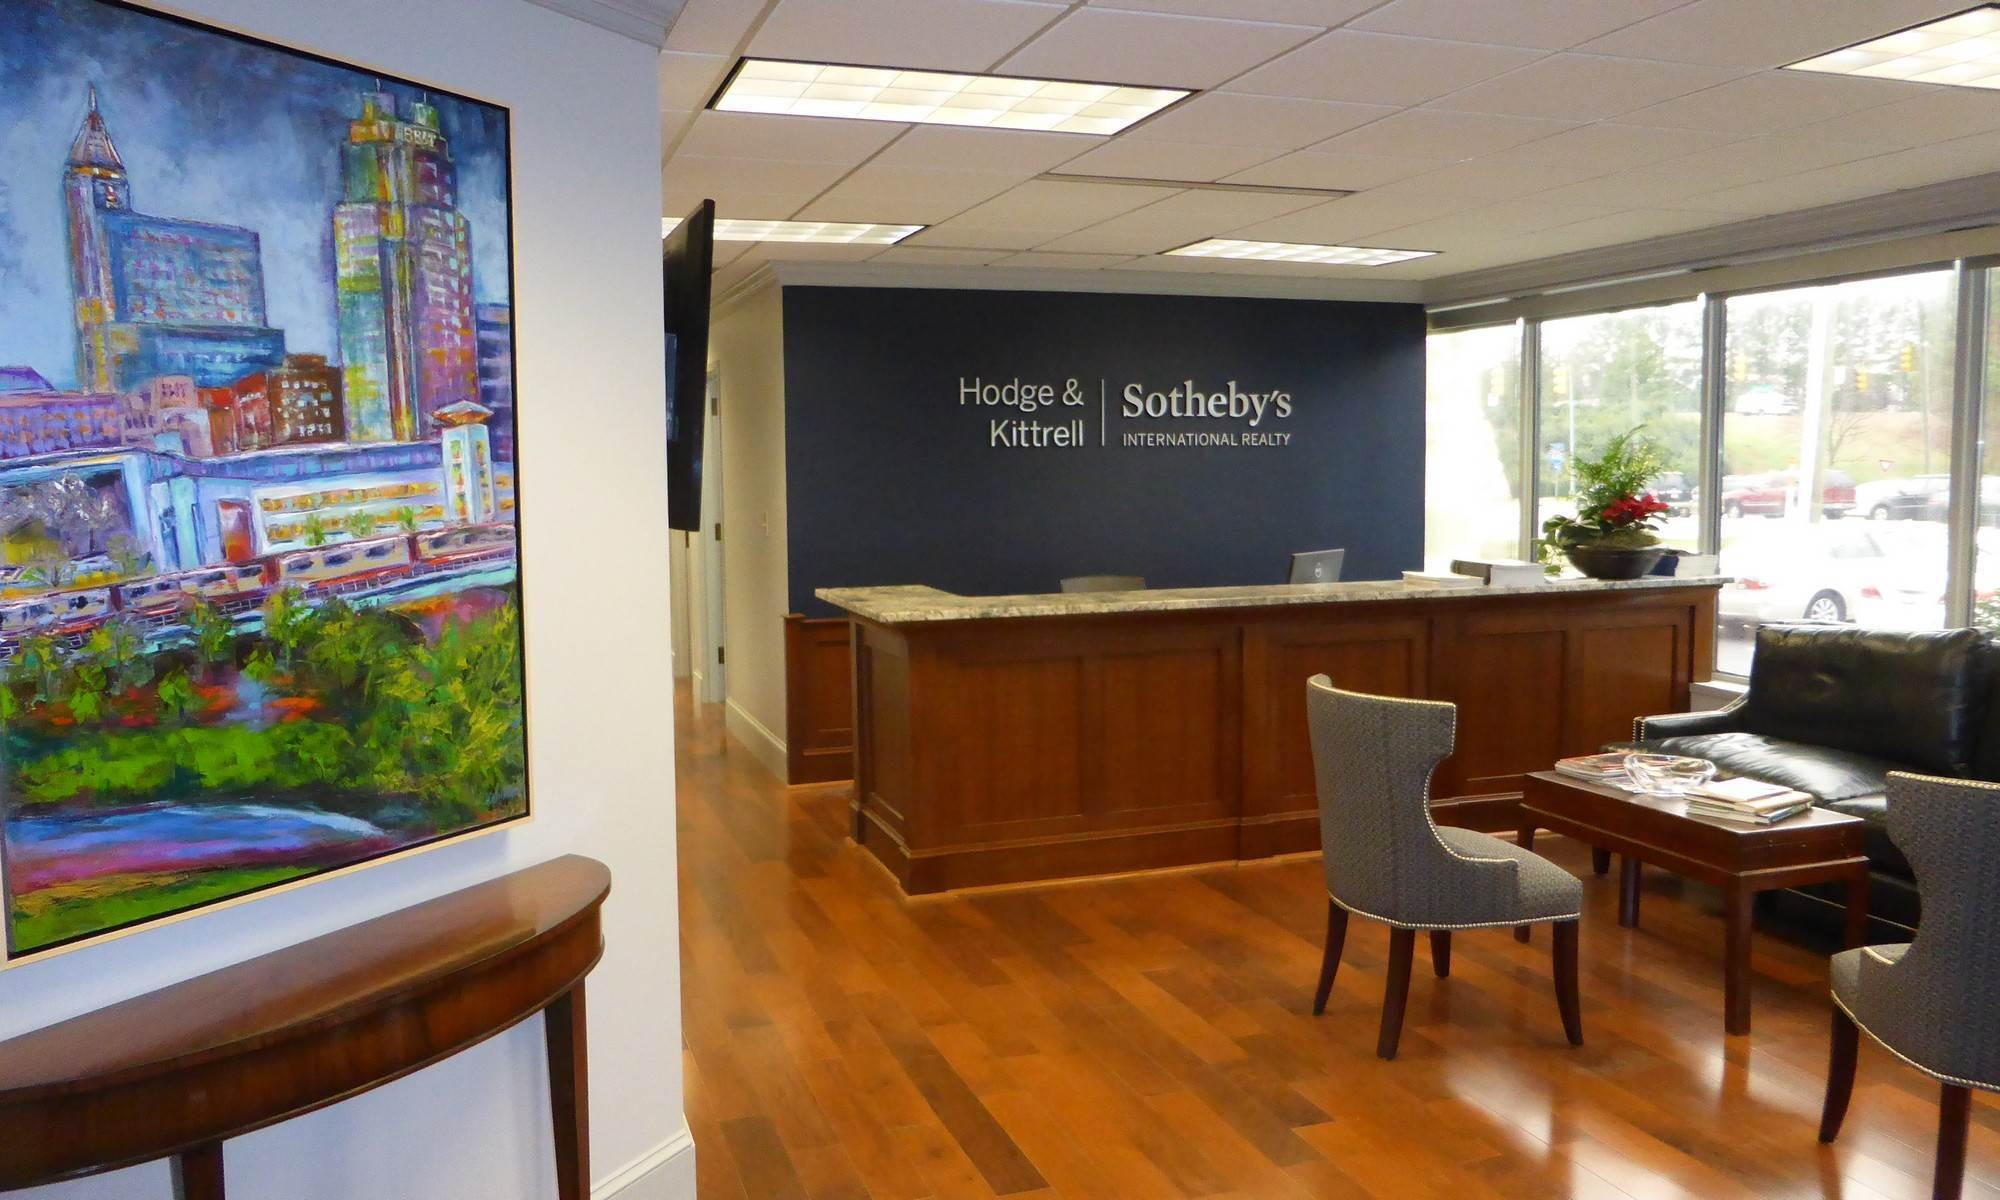 Office Hodge & Kittrell Sotheby's International Realty Photo